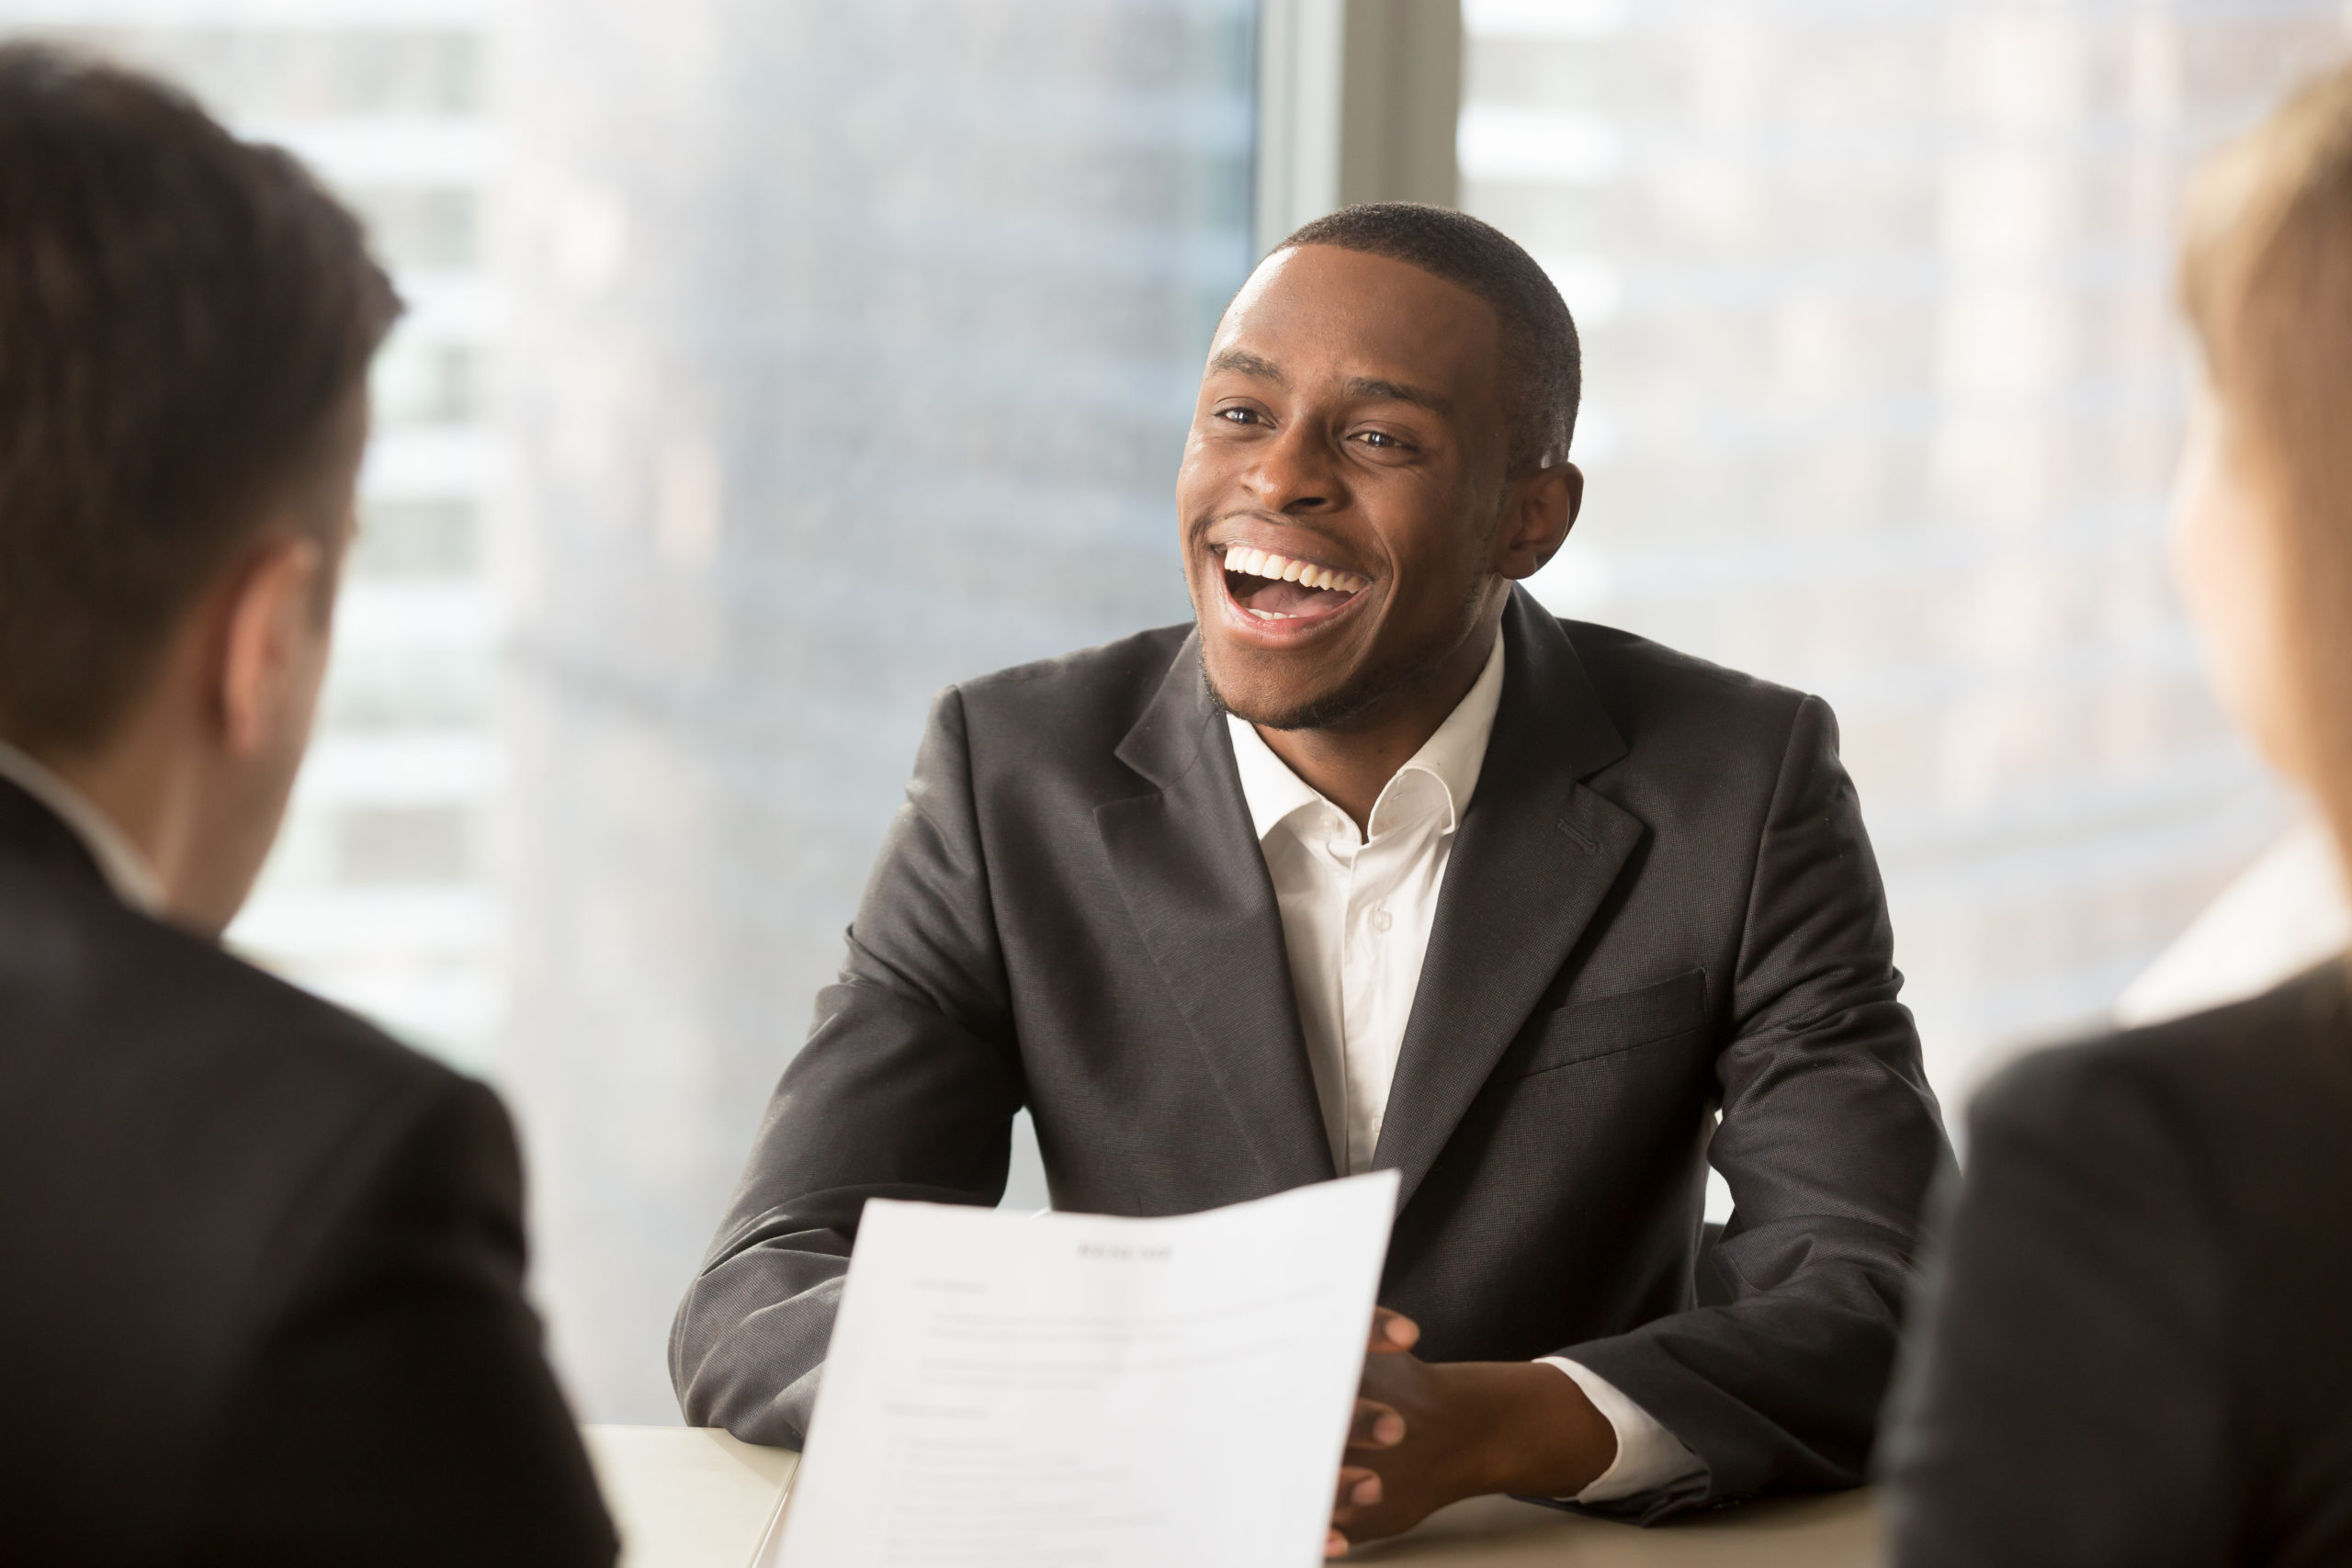 Happy black successful candidate getting hired, cheerful african applicant with beaming smile got a dream job in big company, dark-skinned businessman excited by great news